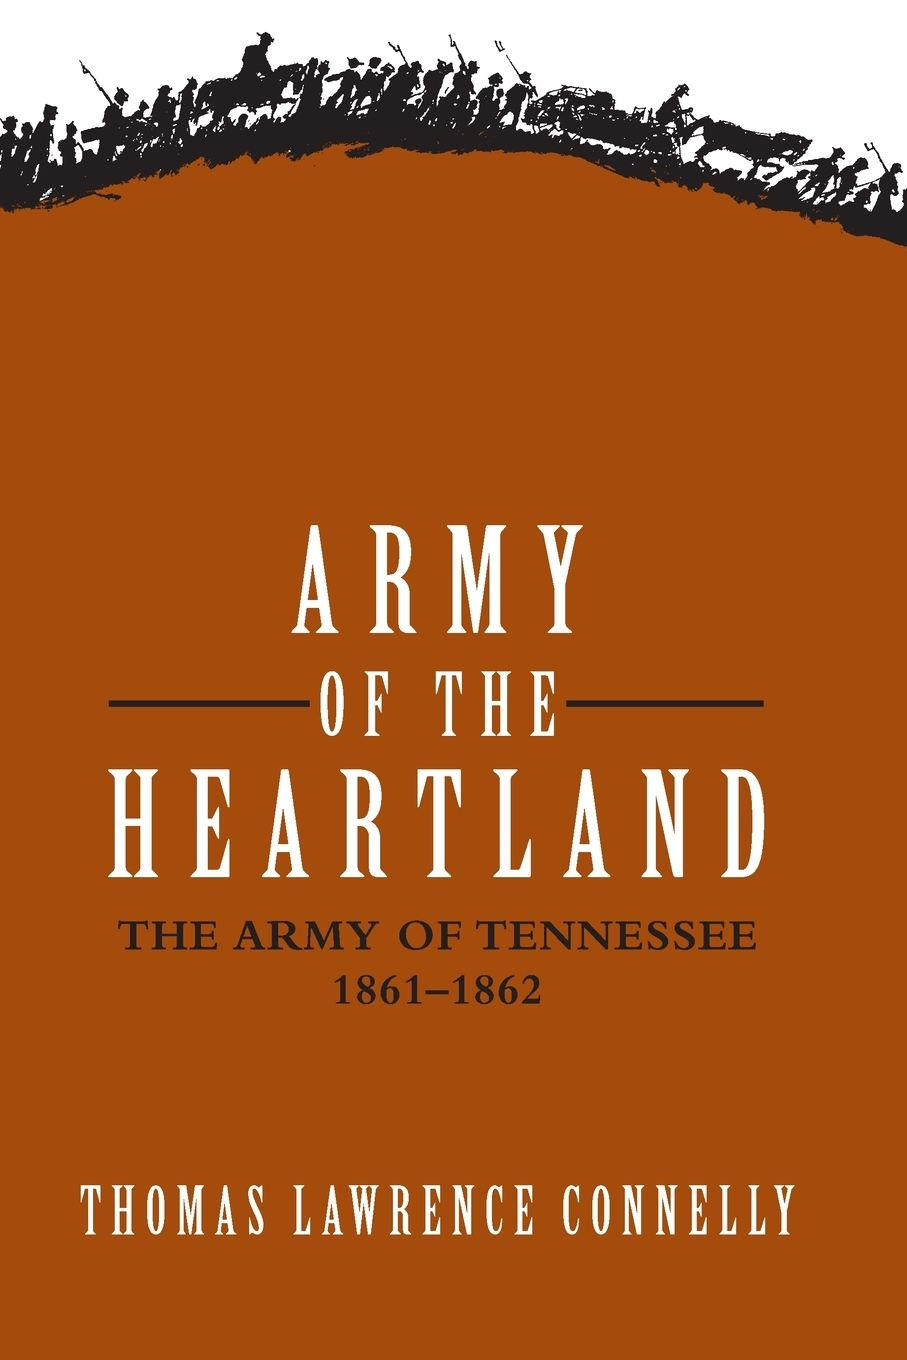 Thomas Lawrence Connelly. Army of the Heartland. The Army of Tennessee, 1861-1862